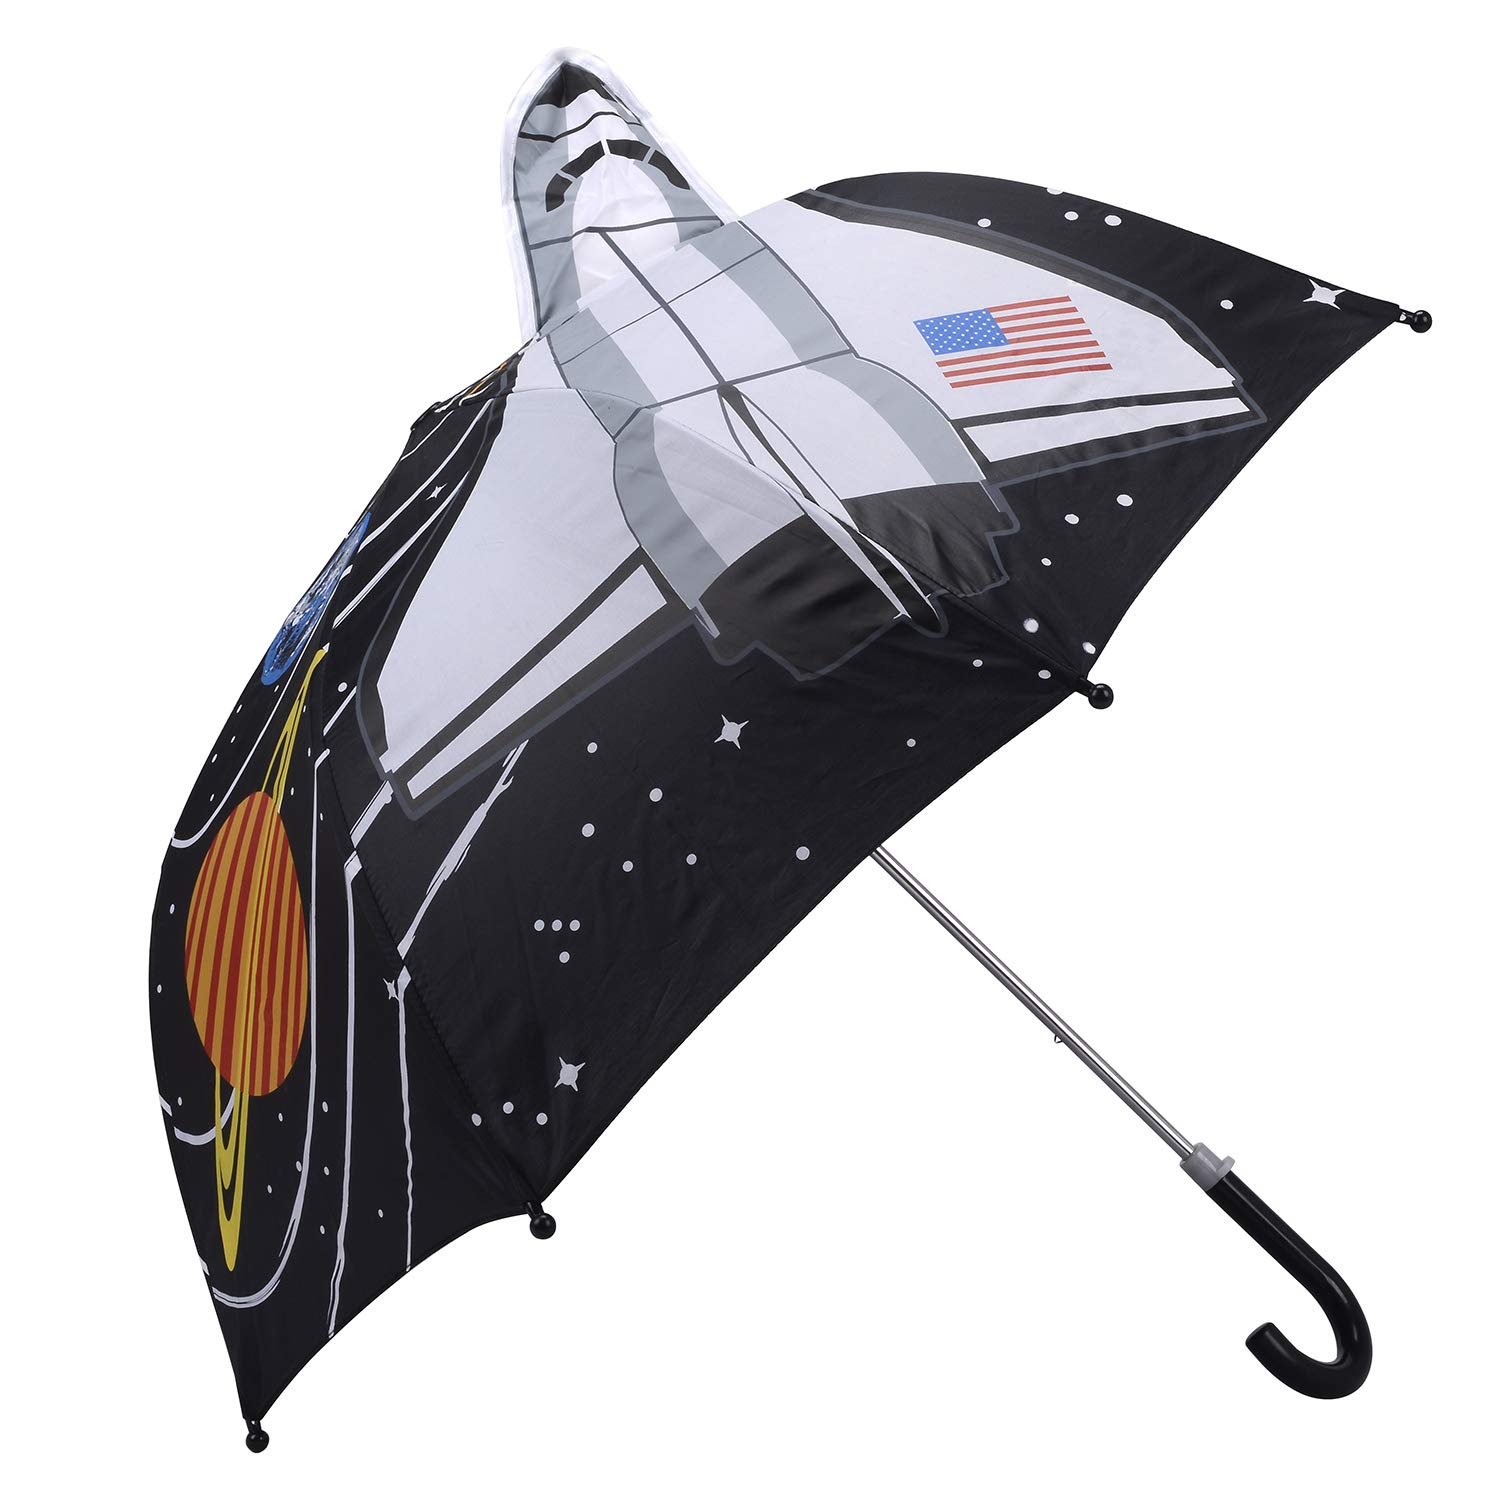 Kidorable Space ship Pop up Umbrella for Kid with Safety Open and Close by Micaddy | Nasa Universal ET Planet Starts | Age 3